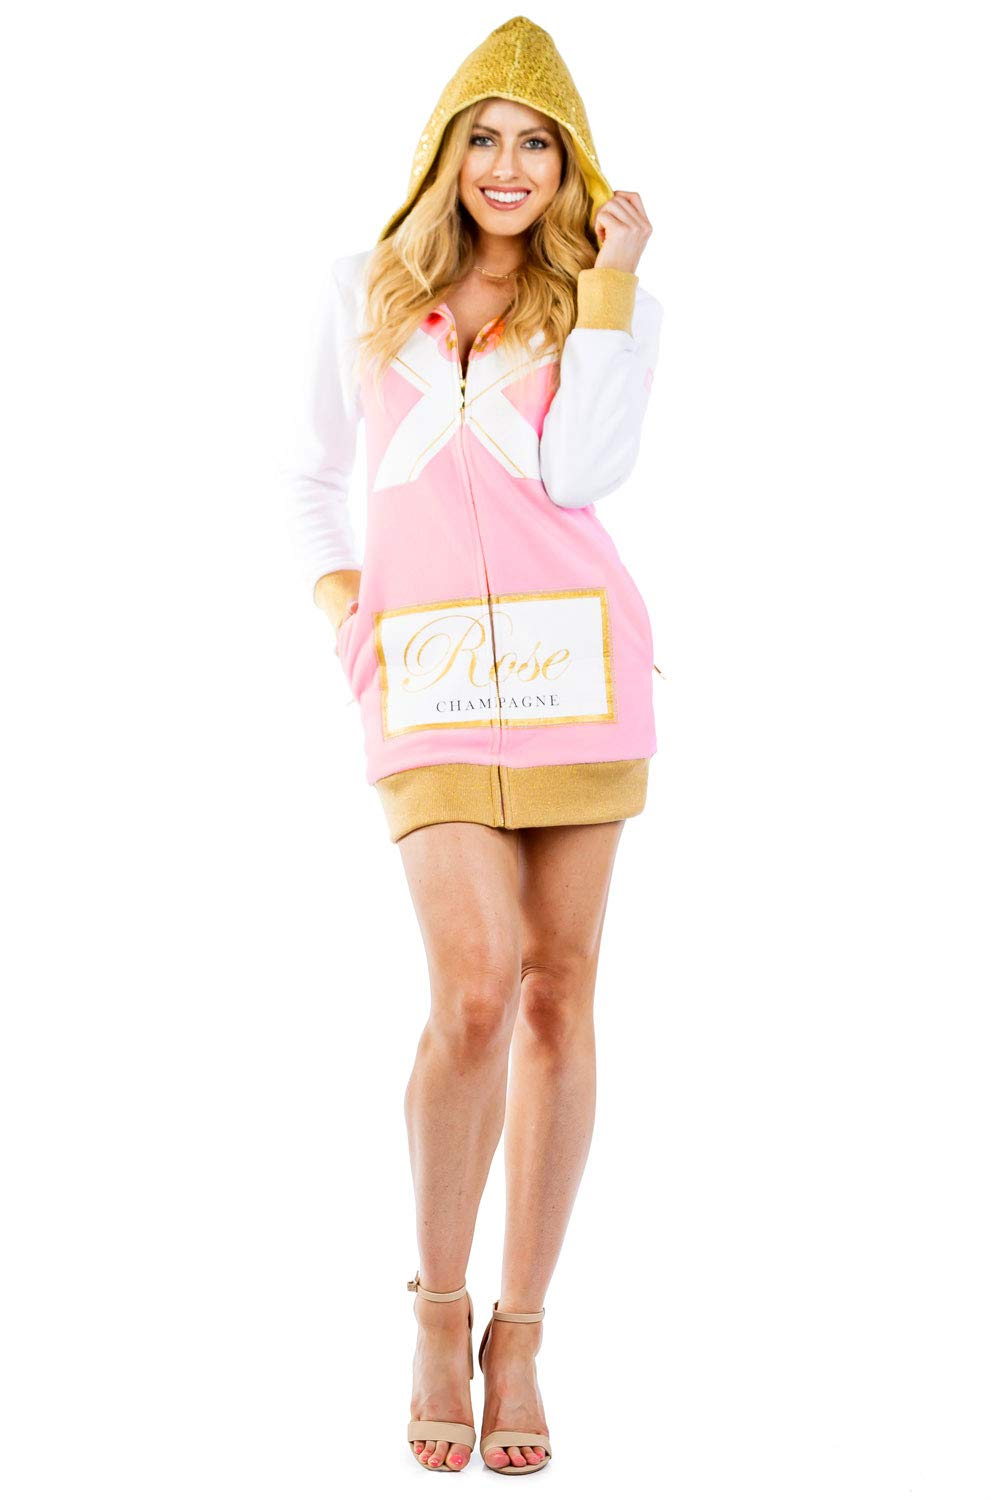 Tipsy Elves Women's Rosé Champagne Costume Dress w/Pockets - Mimosa Halloween Costume for Ladies